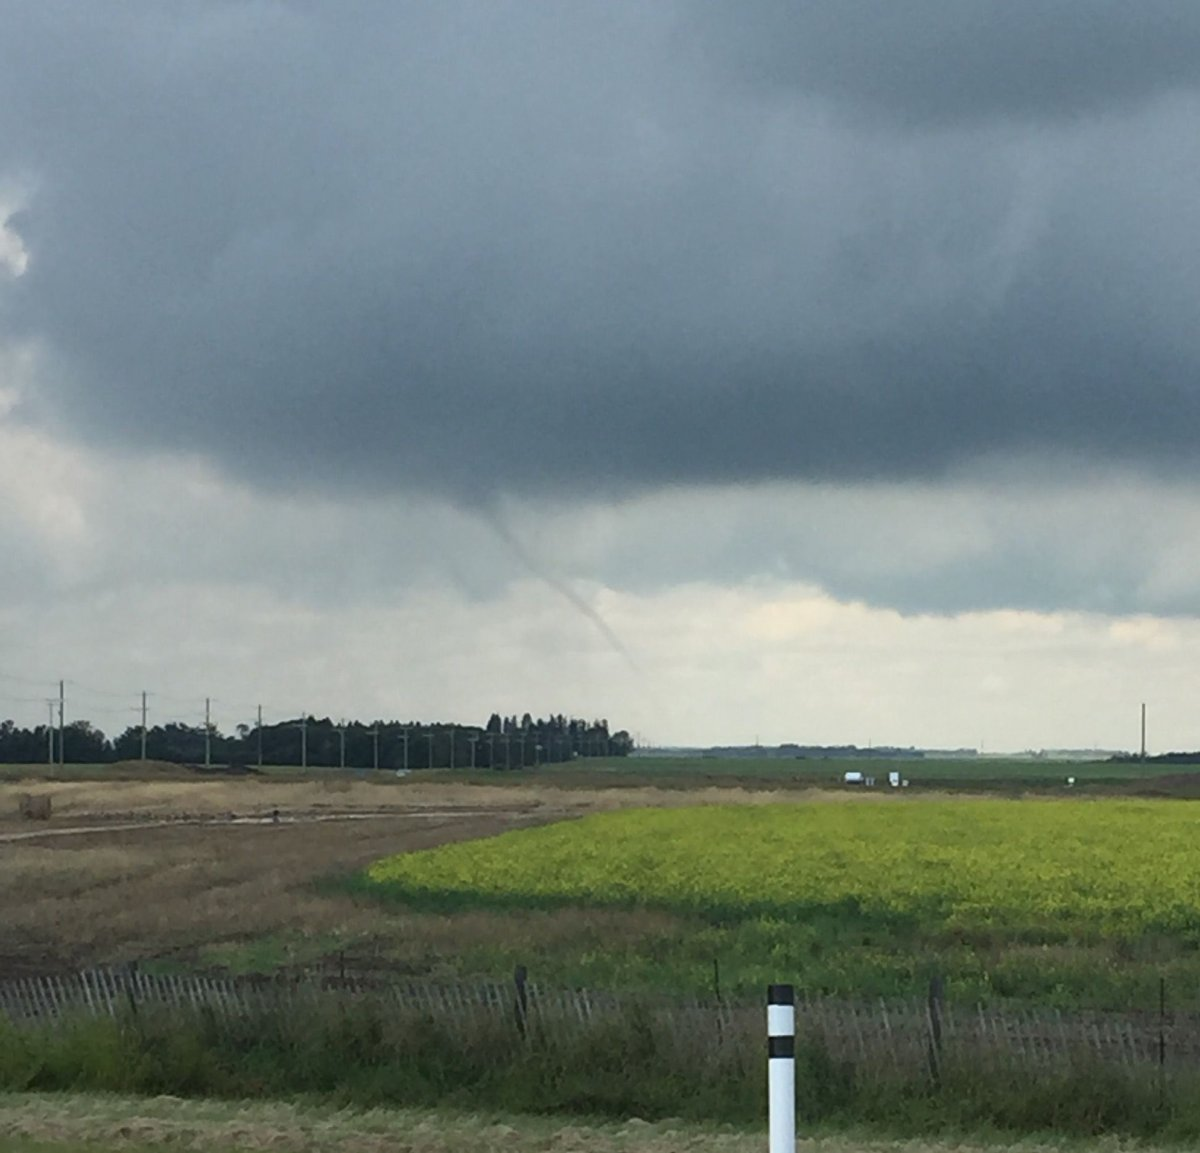 A funnel cloud spotted near Leduc Saturday afternoon shortly after a weather advisory was issued.